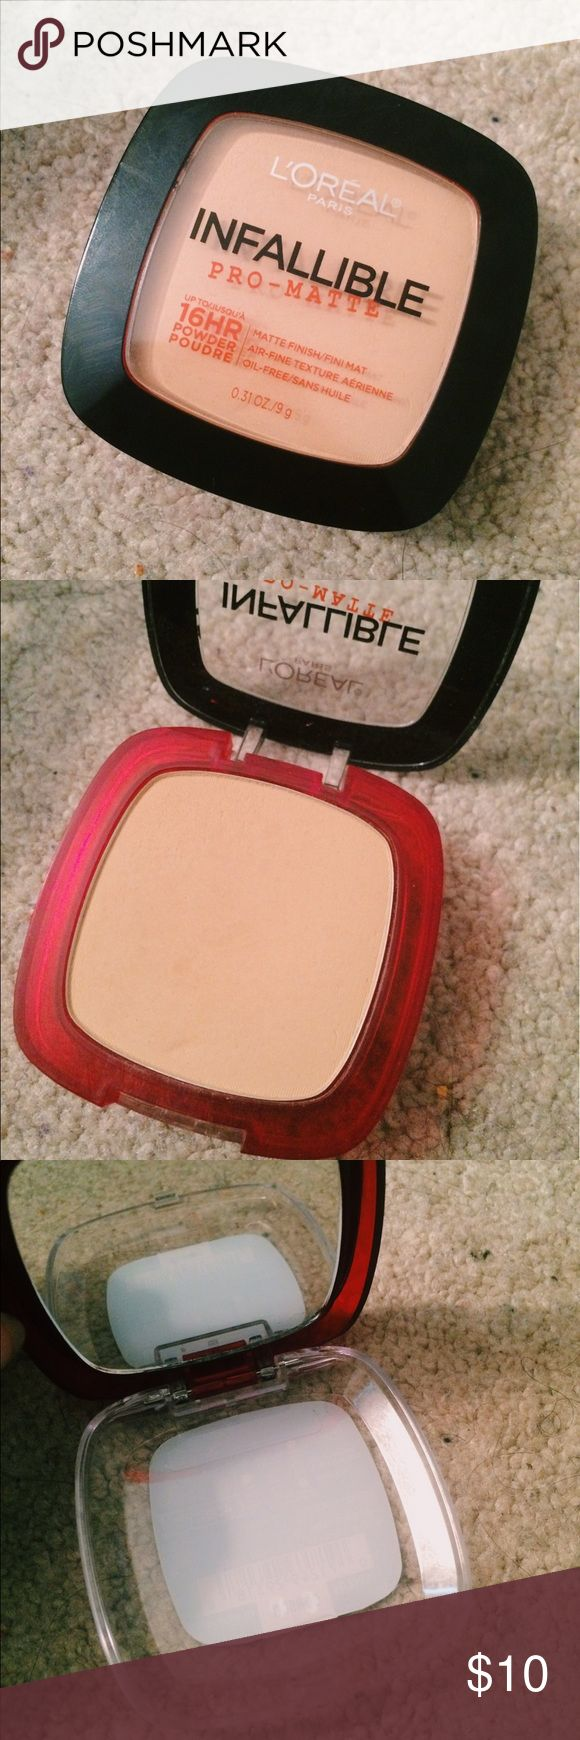 L'Oreal Paris Infallible Pro-Matte Powder L'Oreal Paris || Infallible Pro-Matte Powder || 16 hour wear || Matte Finish || Oil-Free || Tan skin tone || Comes with mirror || Never been used || Any reasonable offers will be accepted. L'Oreal Makeup Face Powder